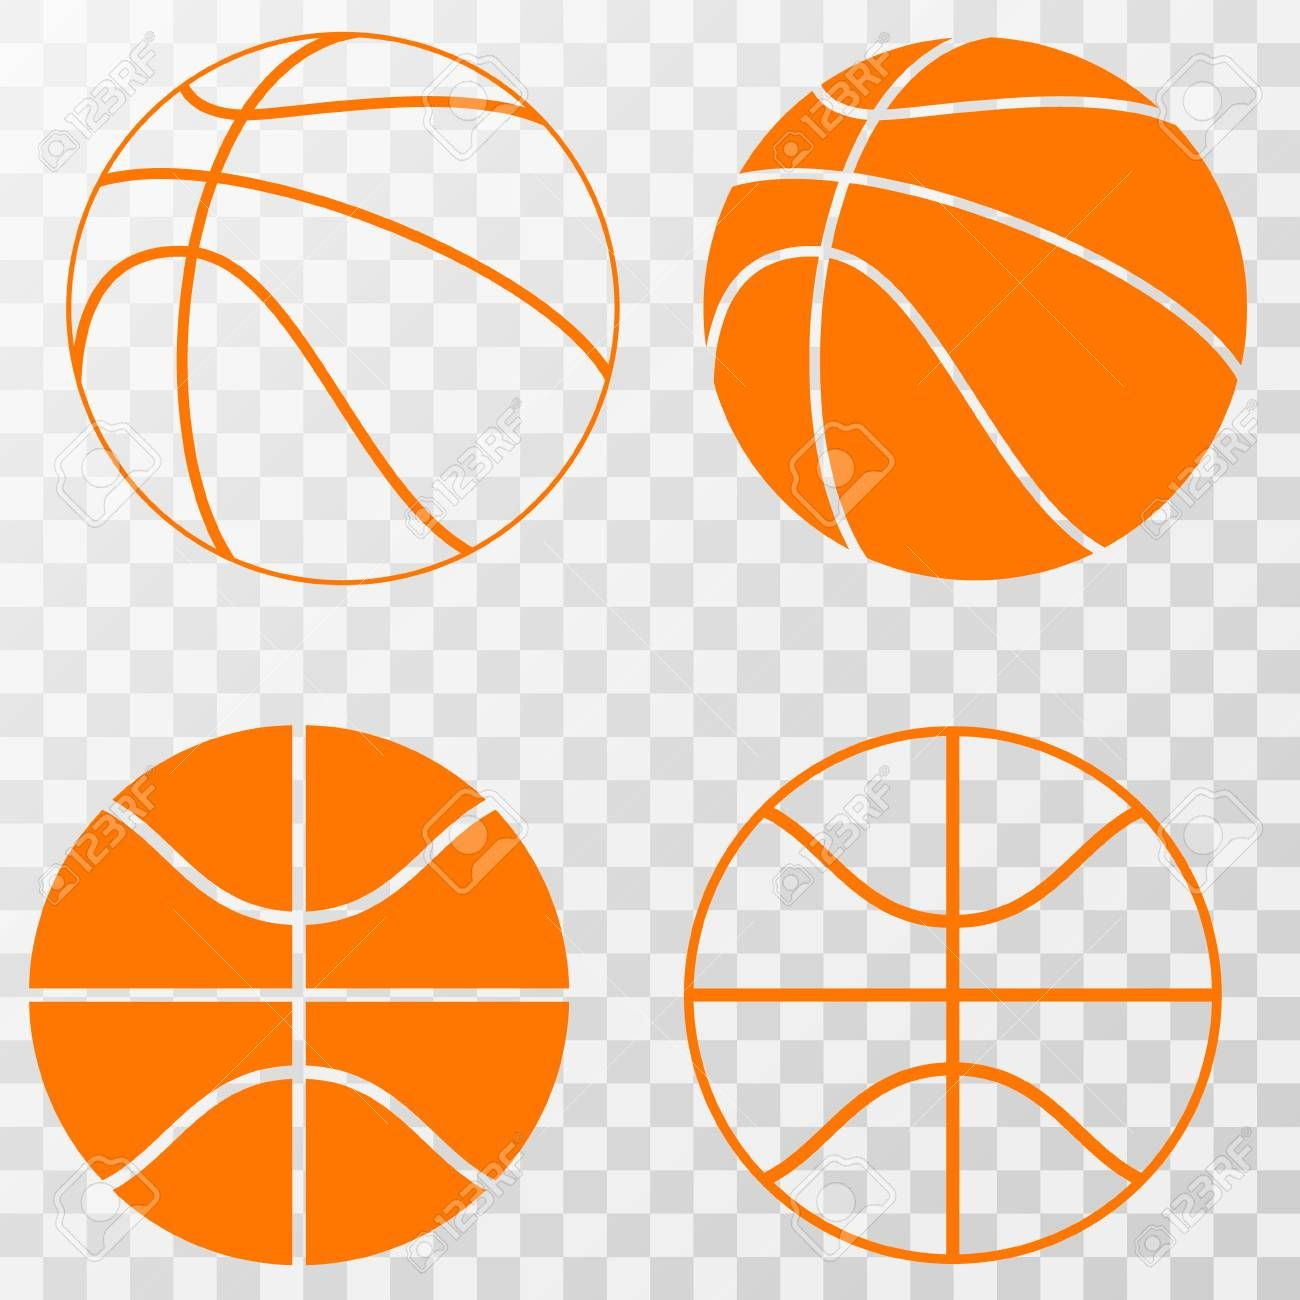 Basketball Icons Set Vector On Transparent Background Ad Set Icons Basketball Background Transparent Floral Illustrations Art Template Icon Set